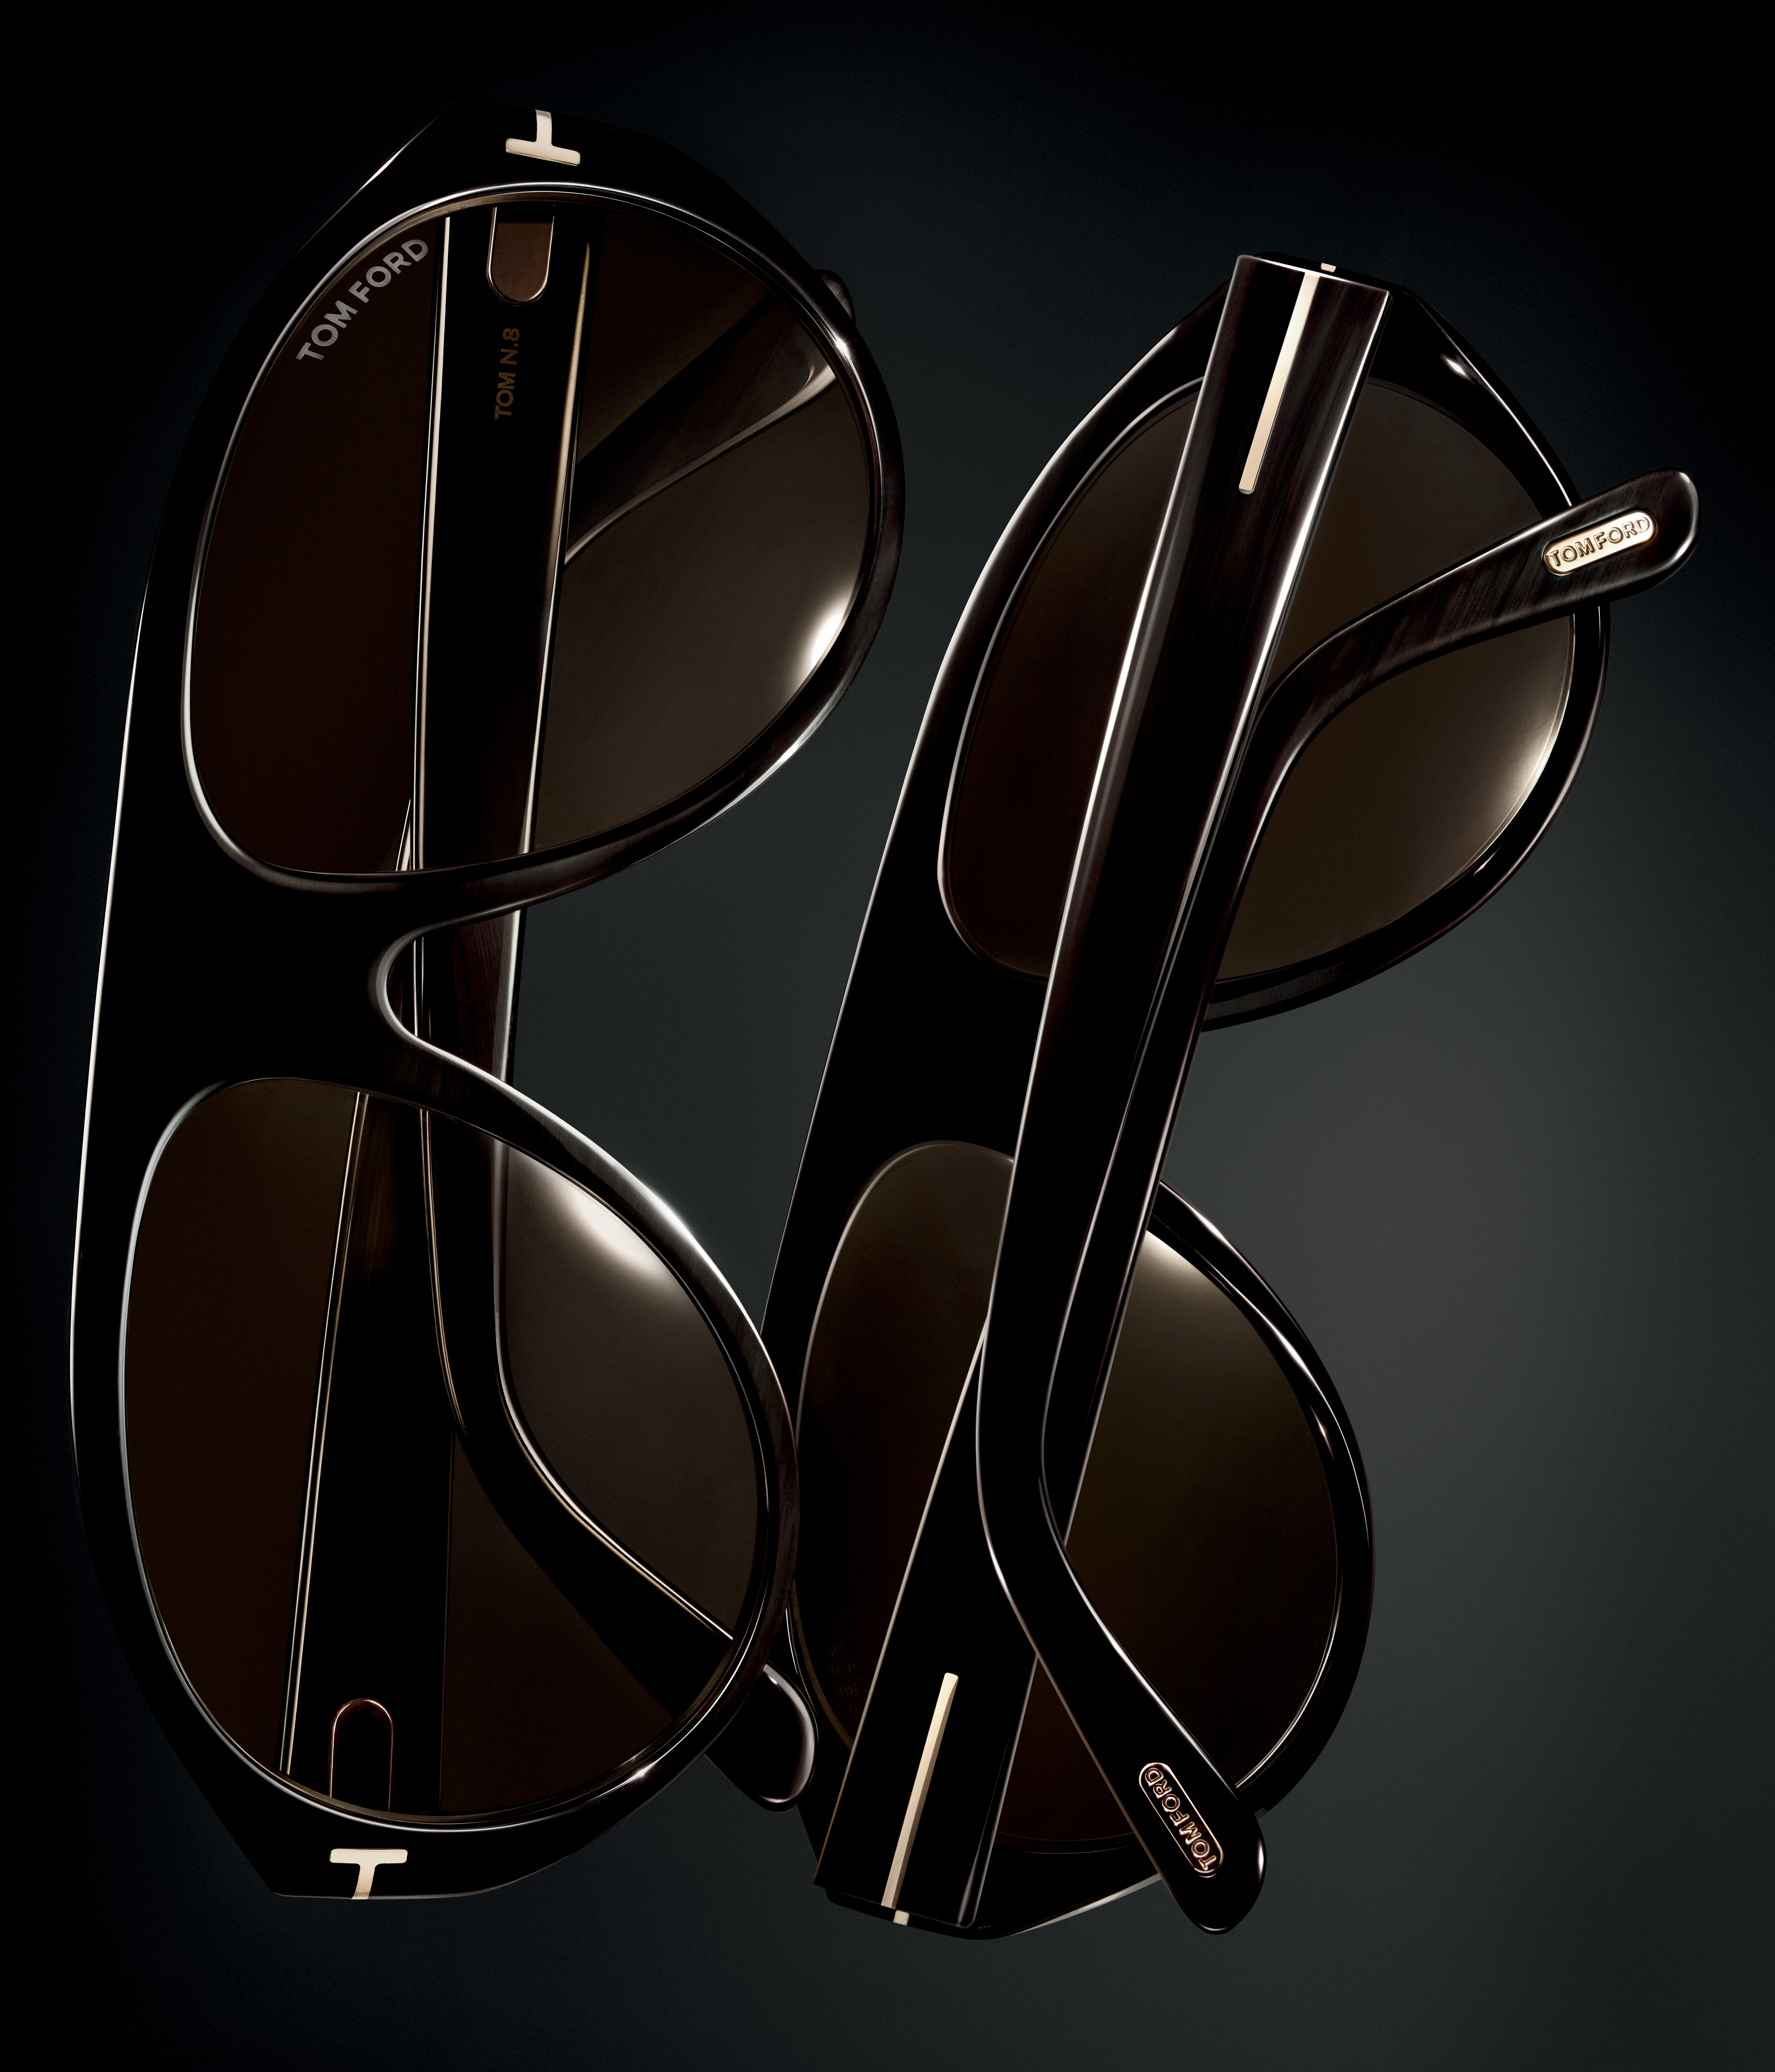 Tom Ford Private Eyewear Collection Bt Collezioni